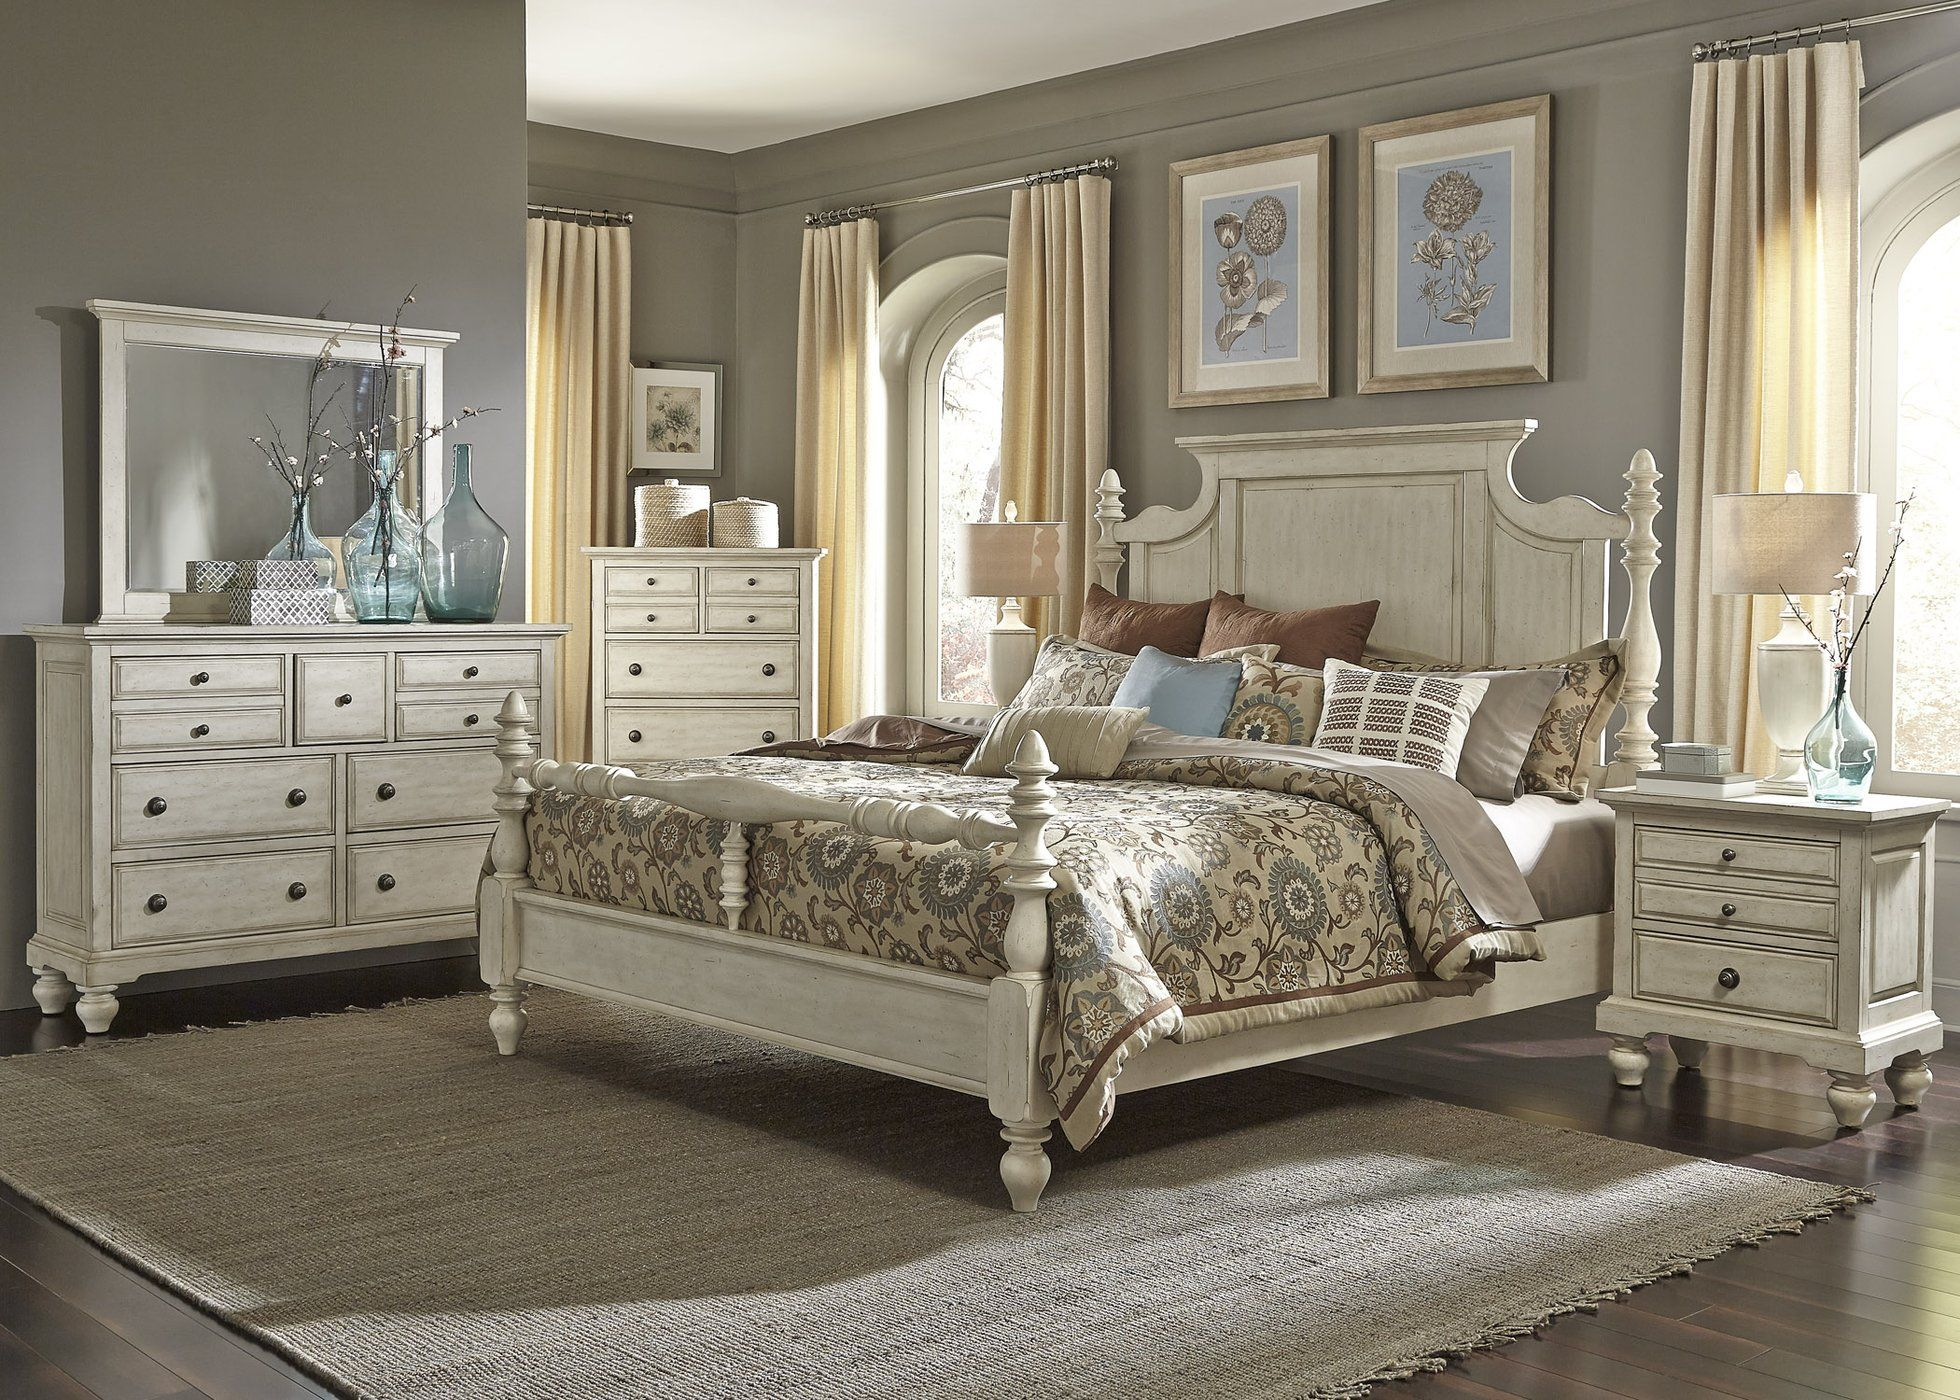 High Country Bedroom King Poster 5 Piece Bedroom Set in 2019 ...